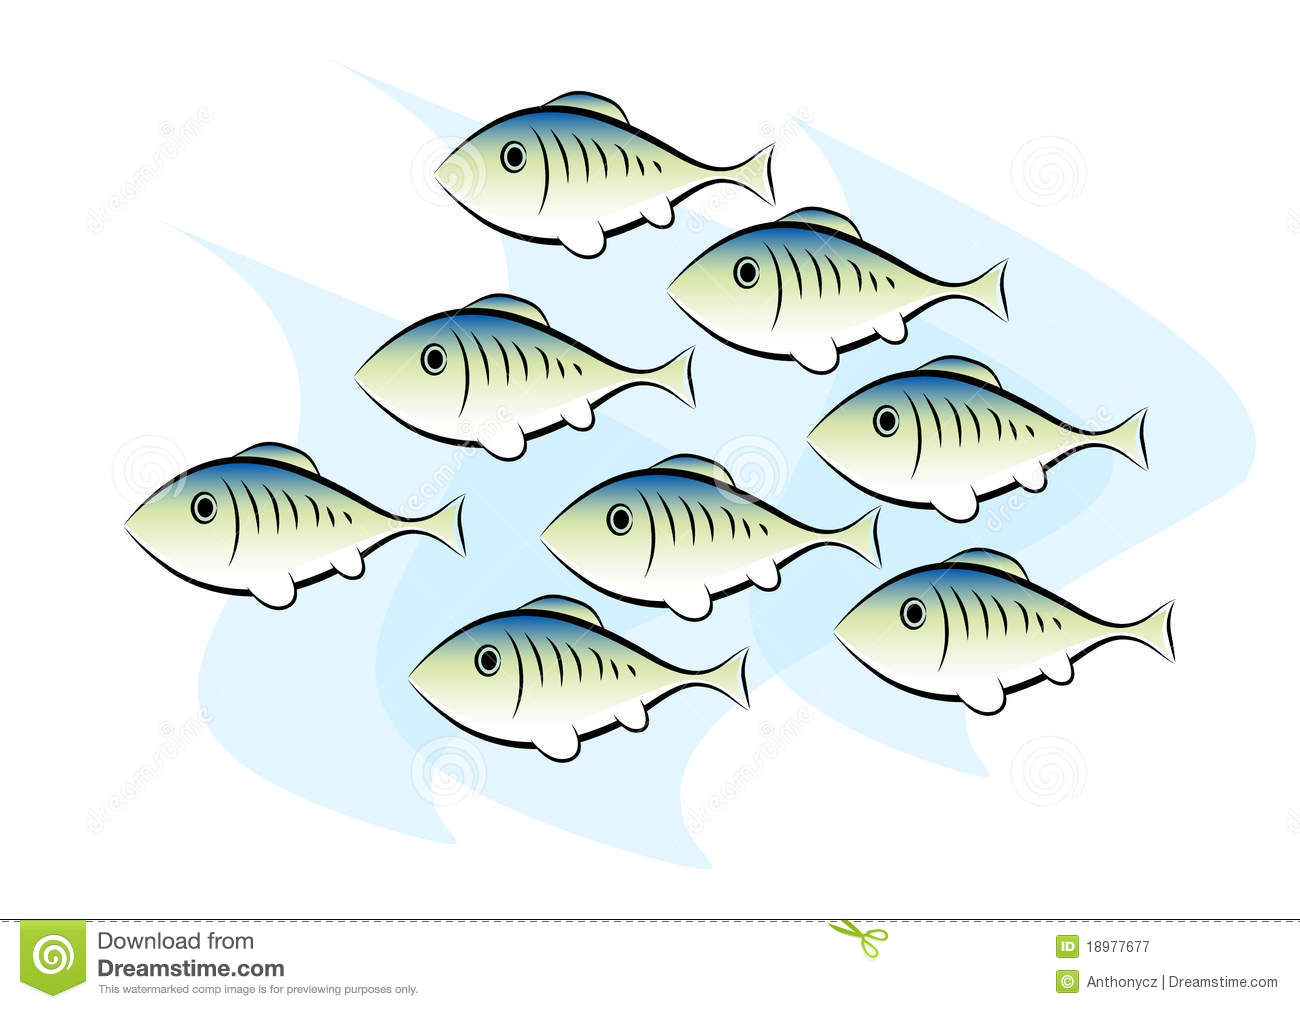 Clip-art of fish stock vector. Illustration of underwater ...